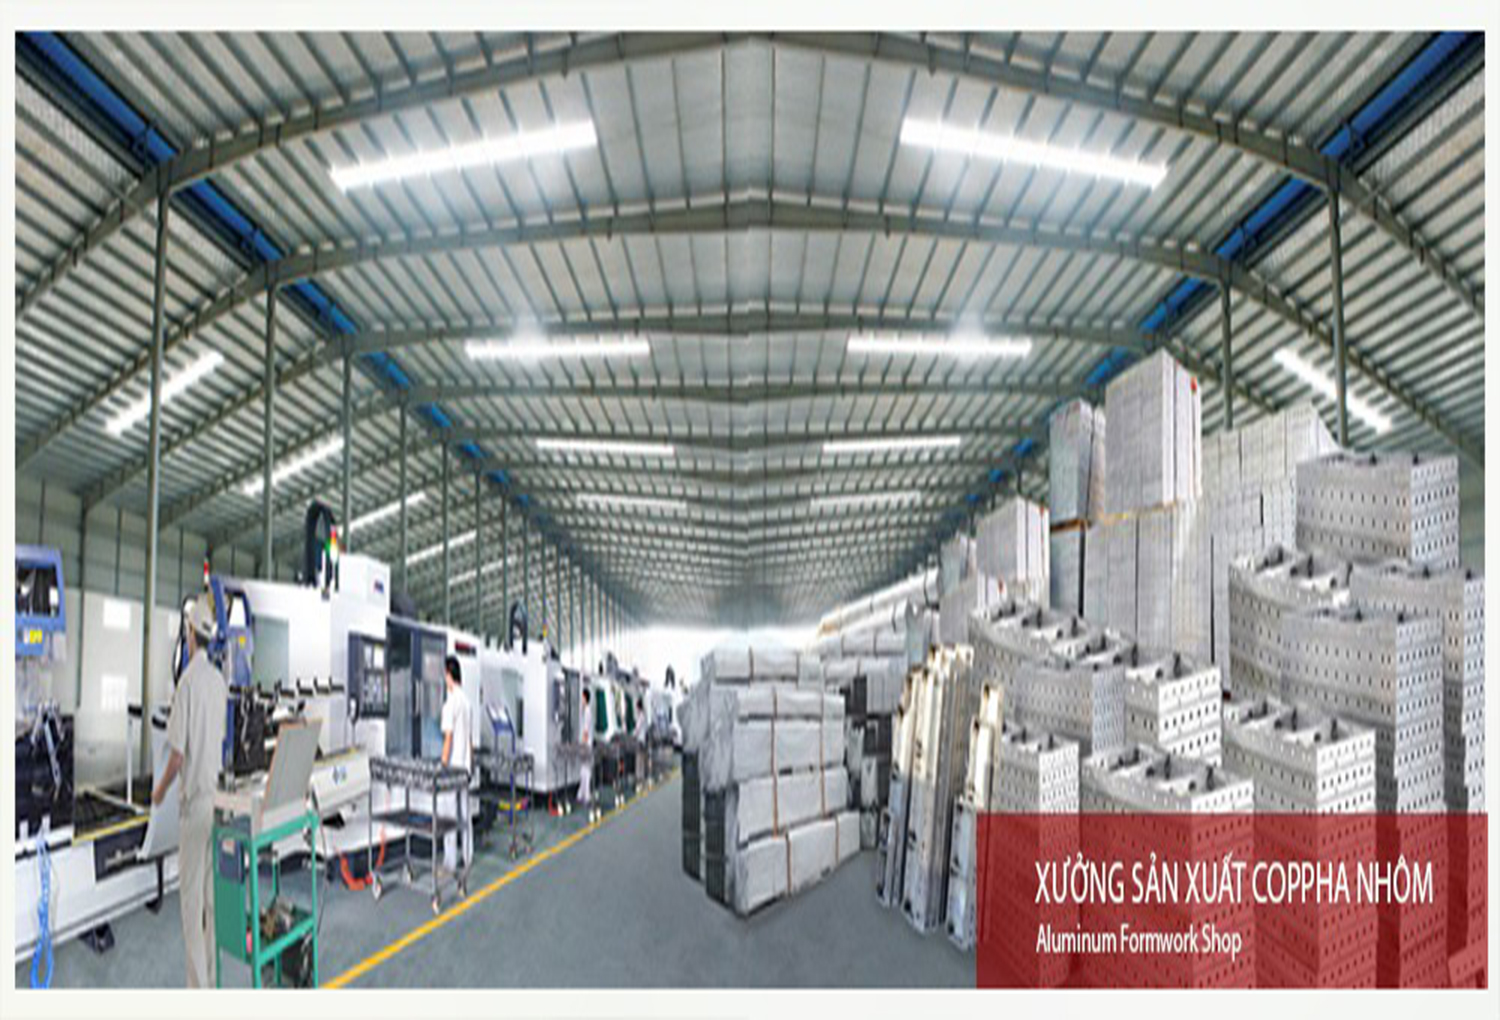 Production Of Aluminum formworks And Accessories